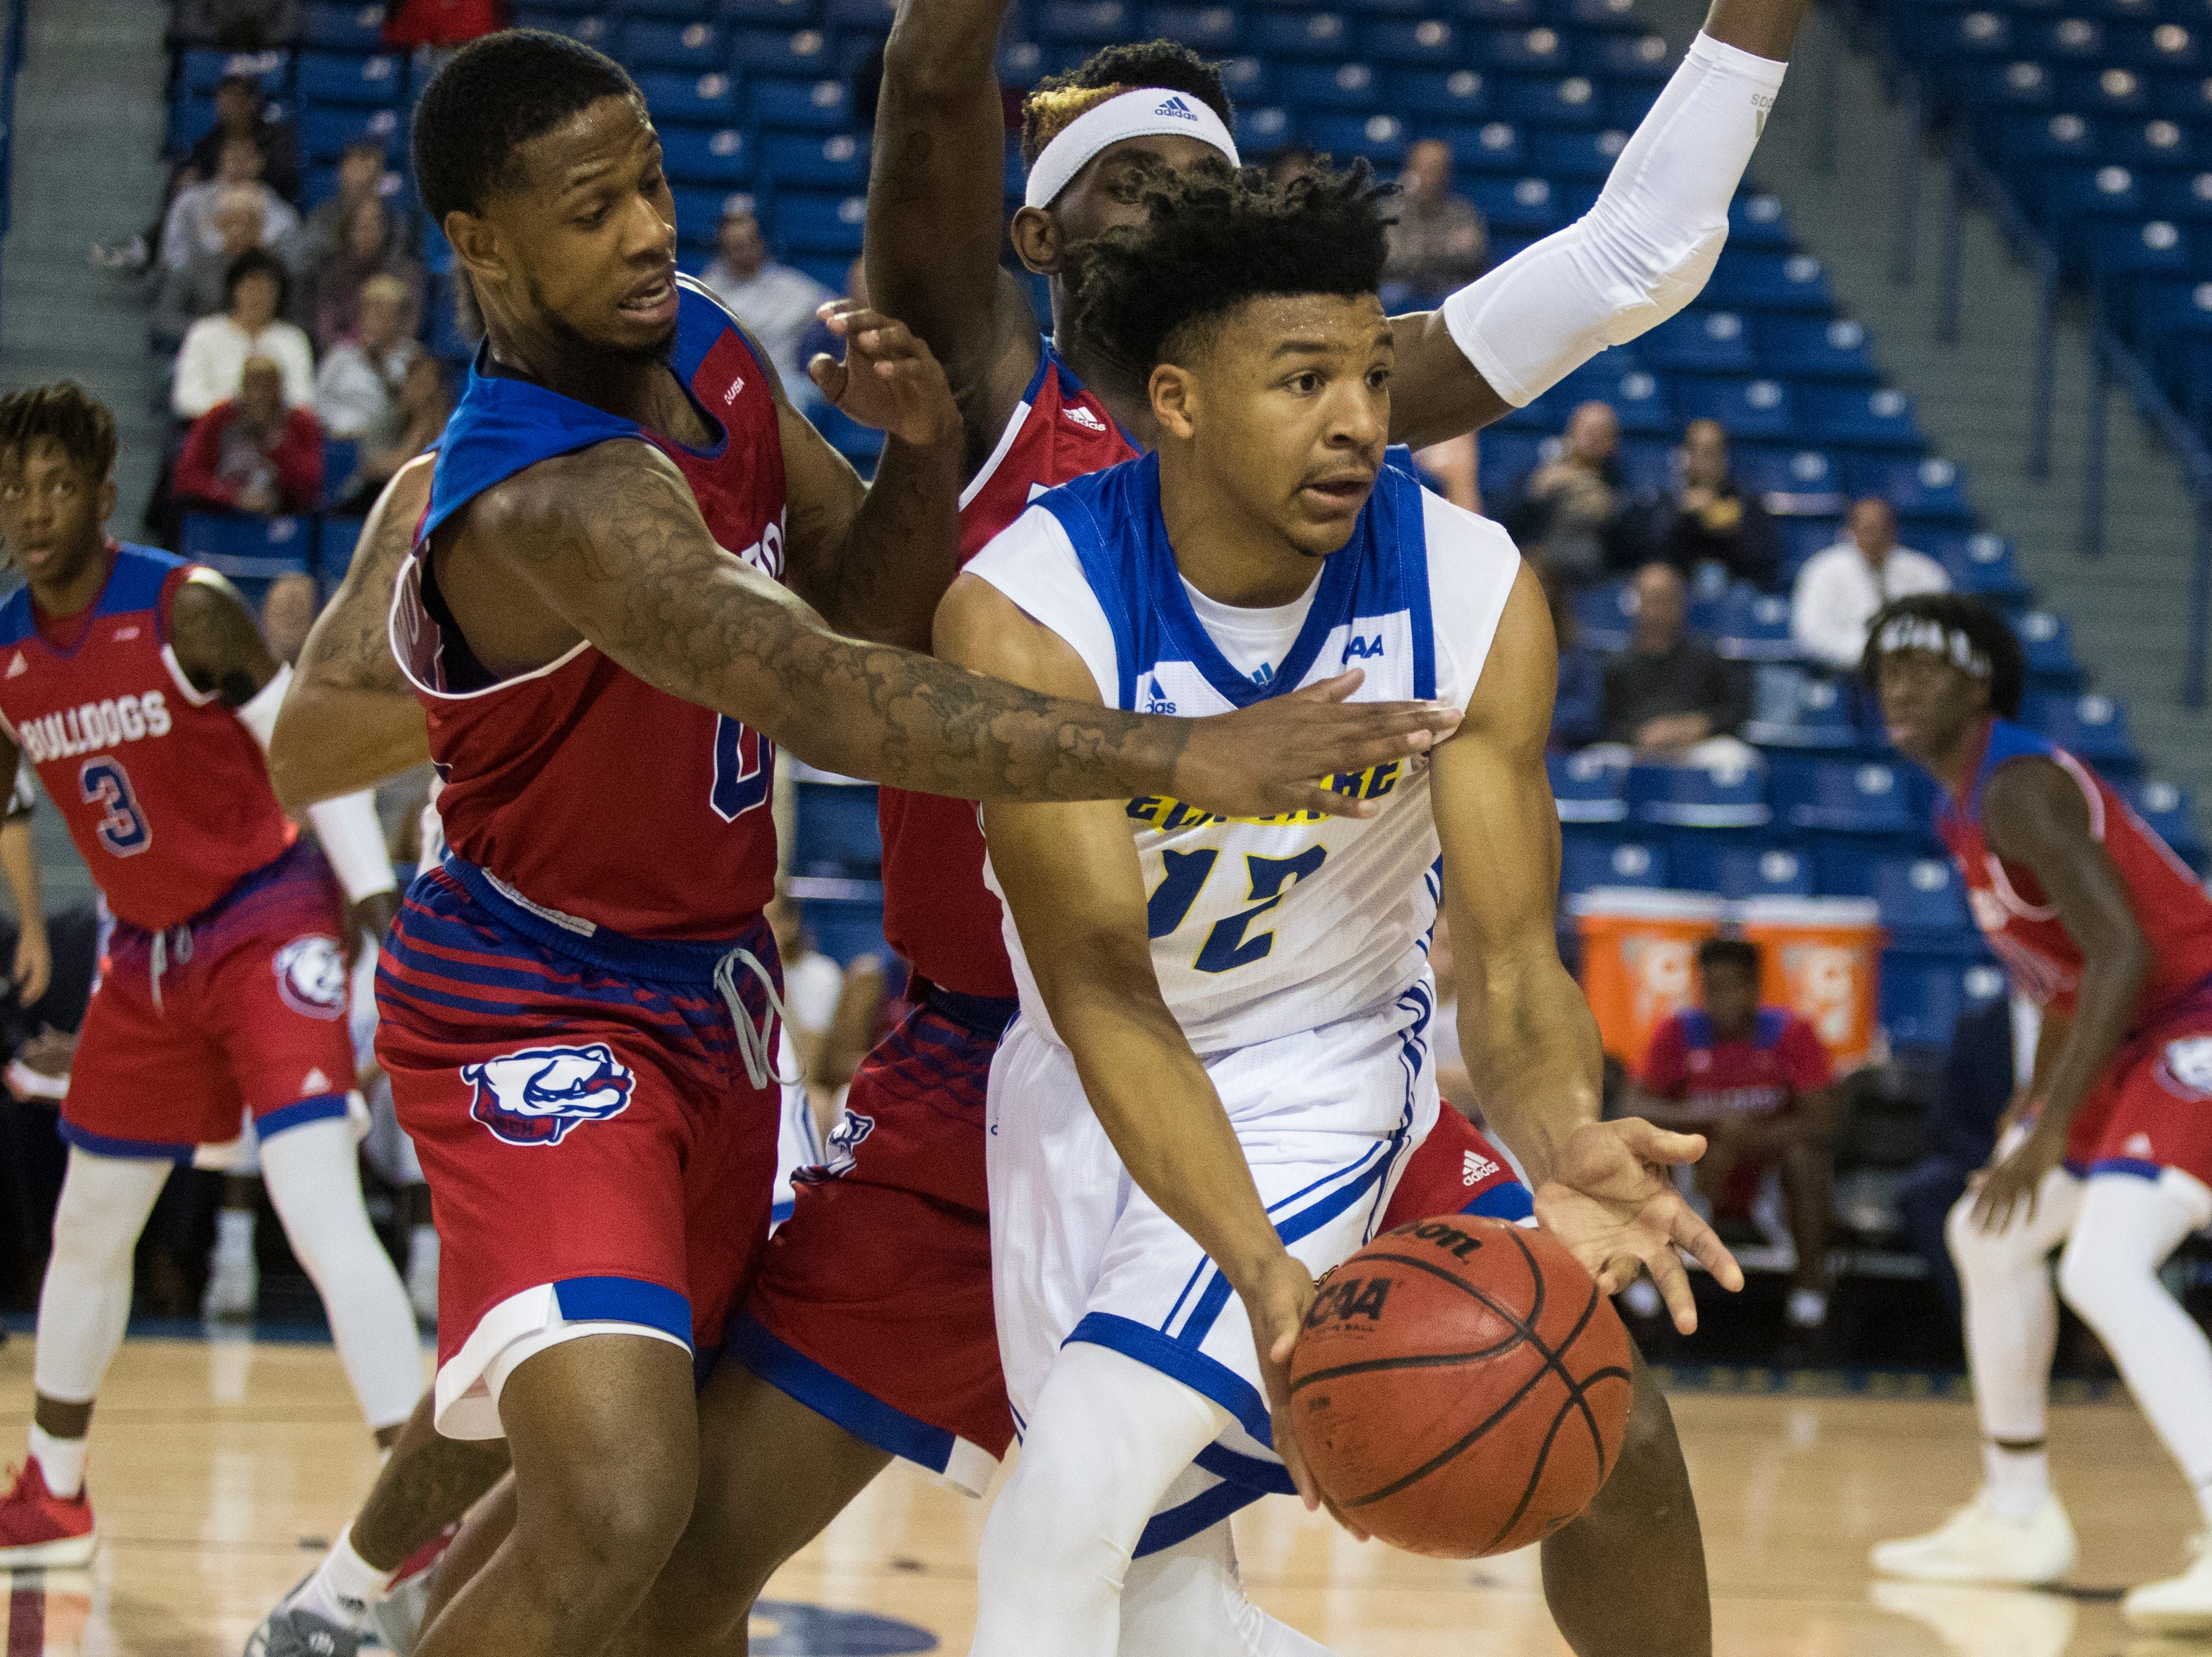 Delaware's Ithiel Horton (12) looks for a teammate to pass too while under pressure from the Louisiana Tech defense Monday at the Bob Carpenter Center. Delaware defeated Louisiana Tech 75-71.